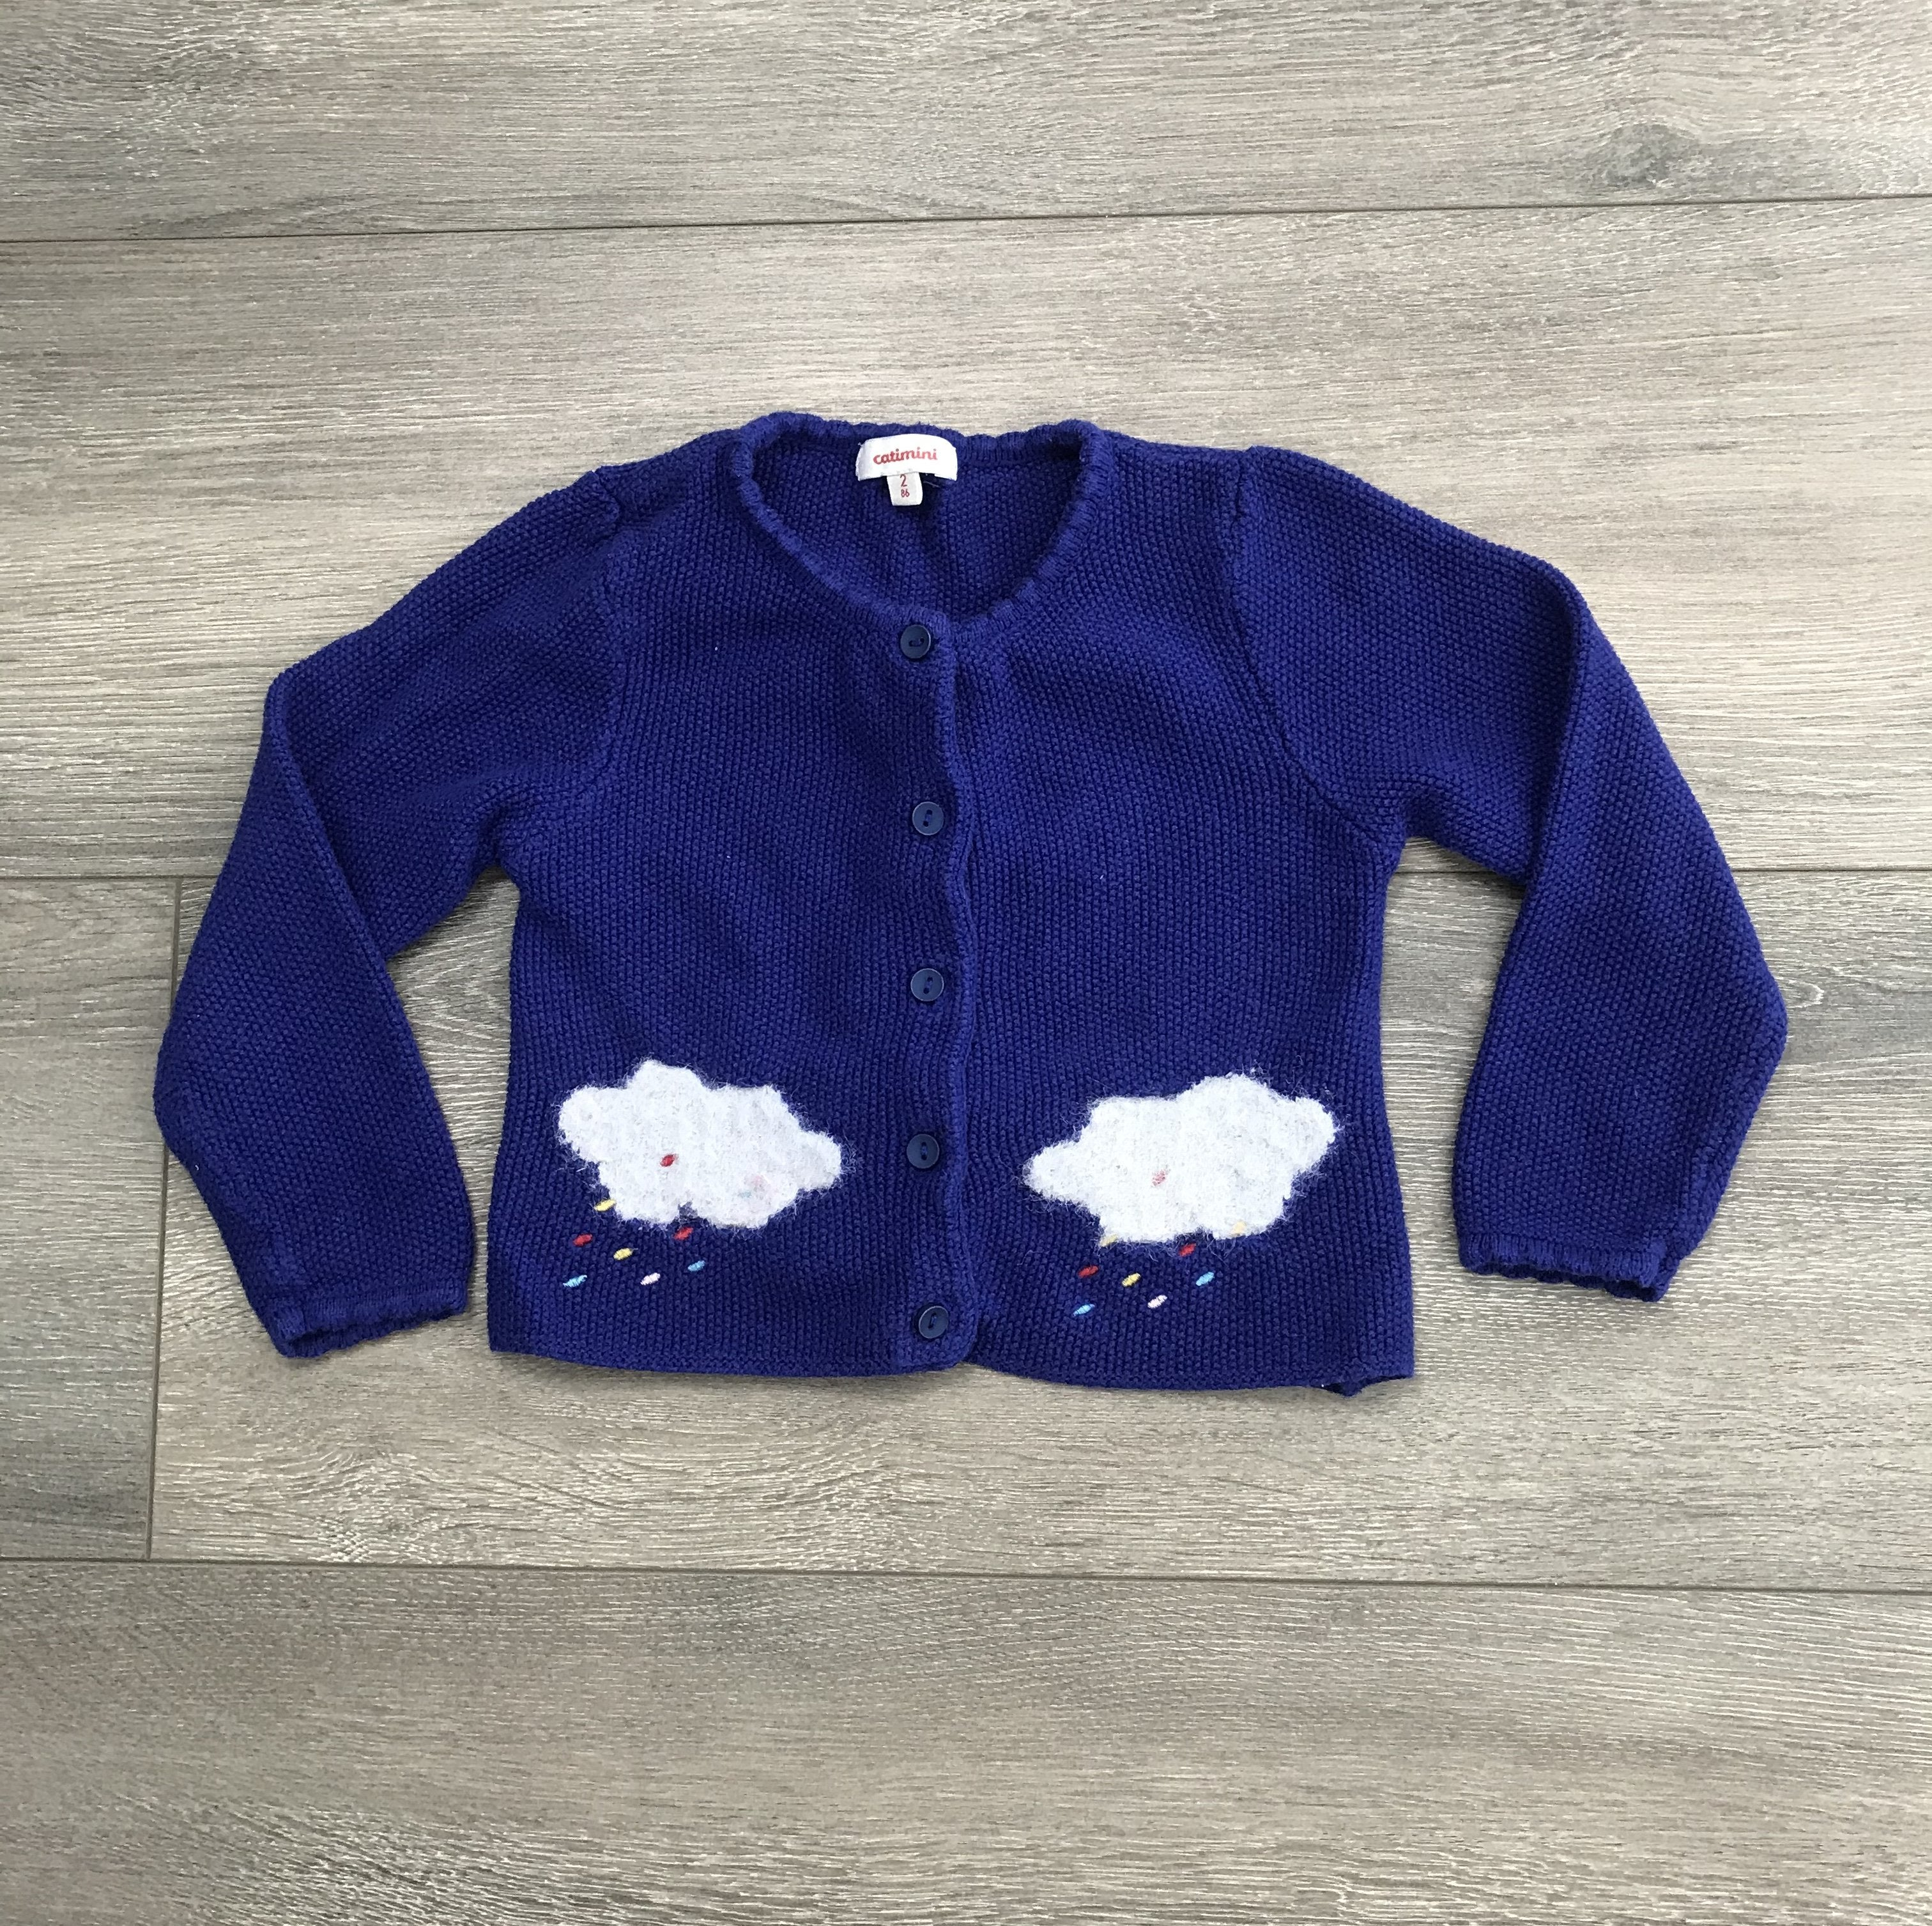 Catimini Cloud Knit Cardigan, Designed in France. Simplistic premium baby clothes., Blue, 38% Modal, 36% Cotton, 26% Polyamide, toddler clothes, 24 months baby cardigan, baby girl cardigan